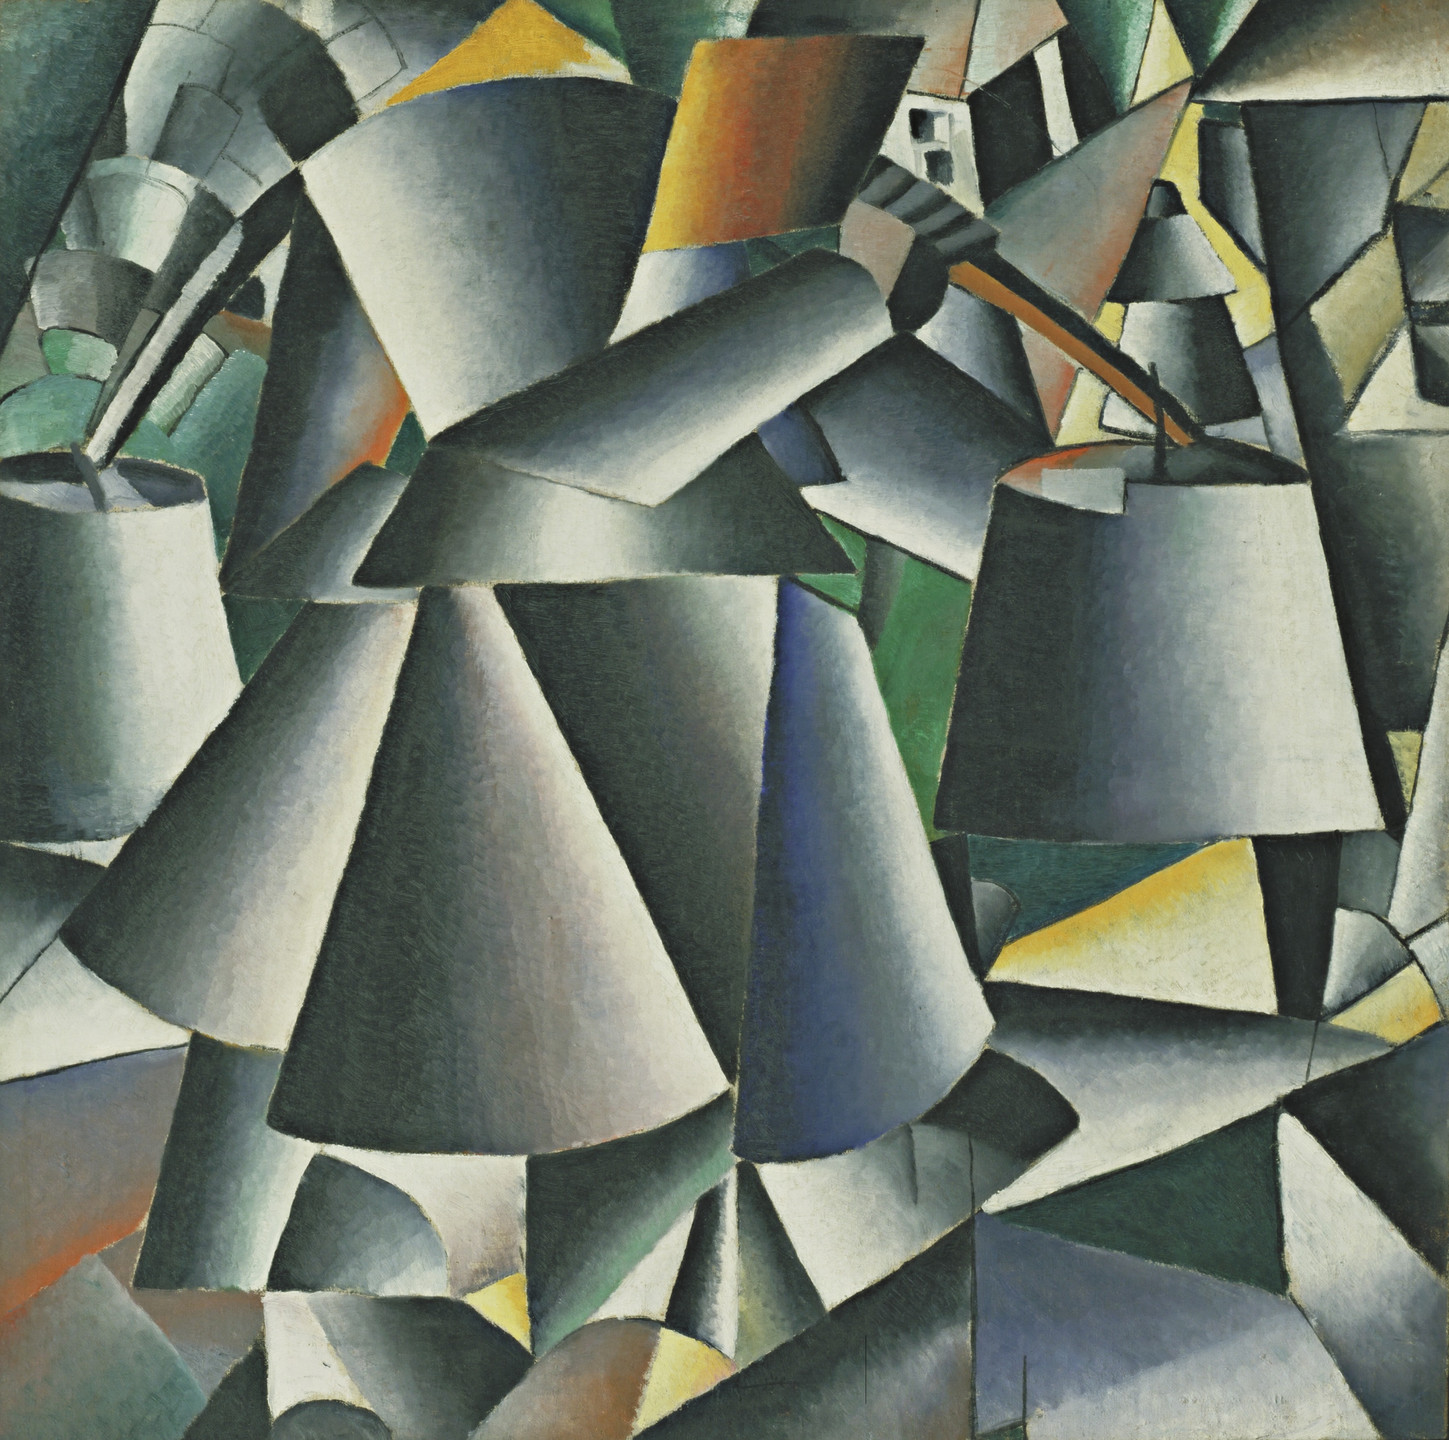 Kazimir Malevich. Woman with Pails: Dynamic Arrangement. 1912-13 (dated on reverse 1912)